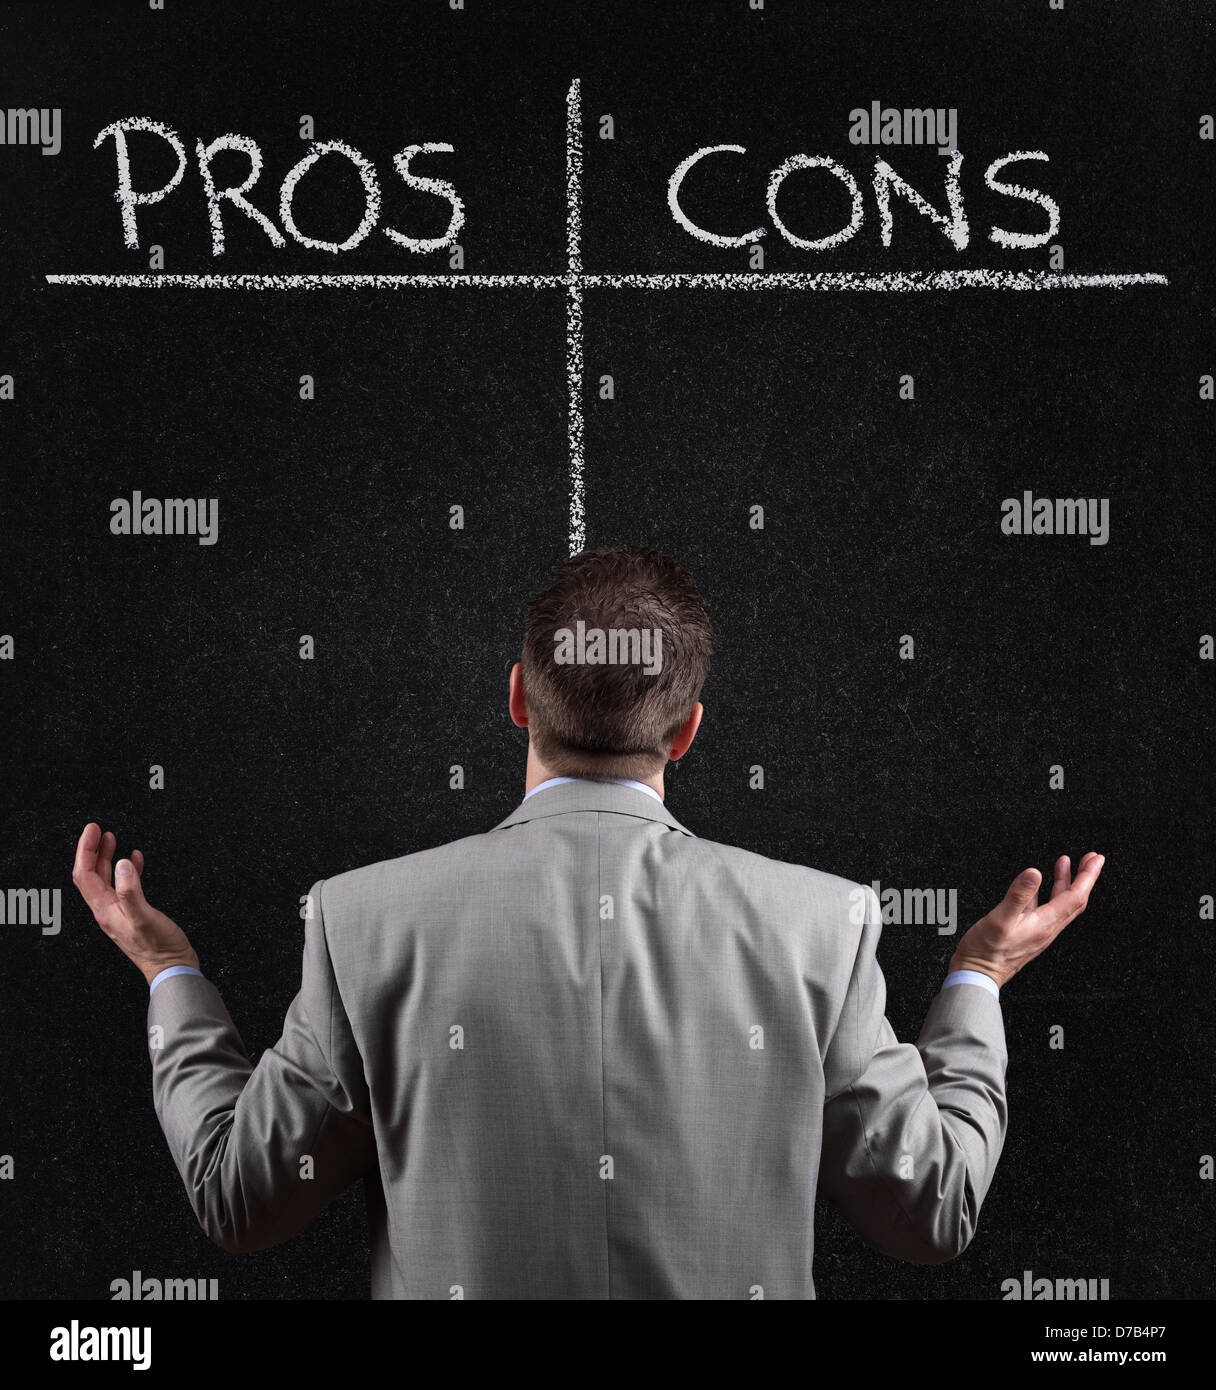 Pros and cons - Stock Image